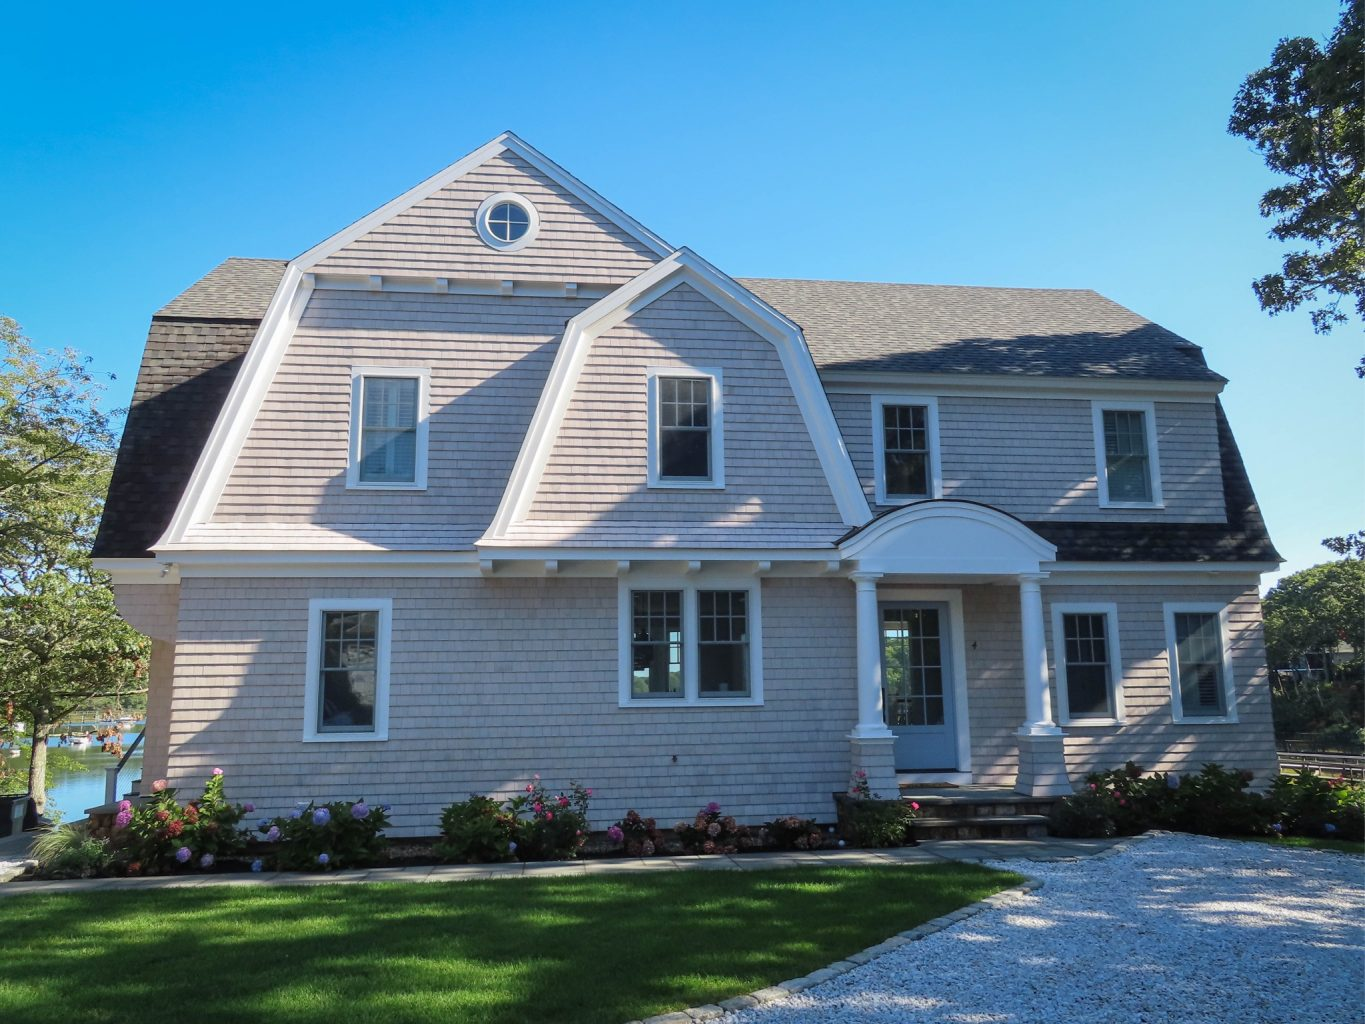 Large home with gambrel style roof and a stone driveway.